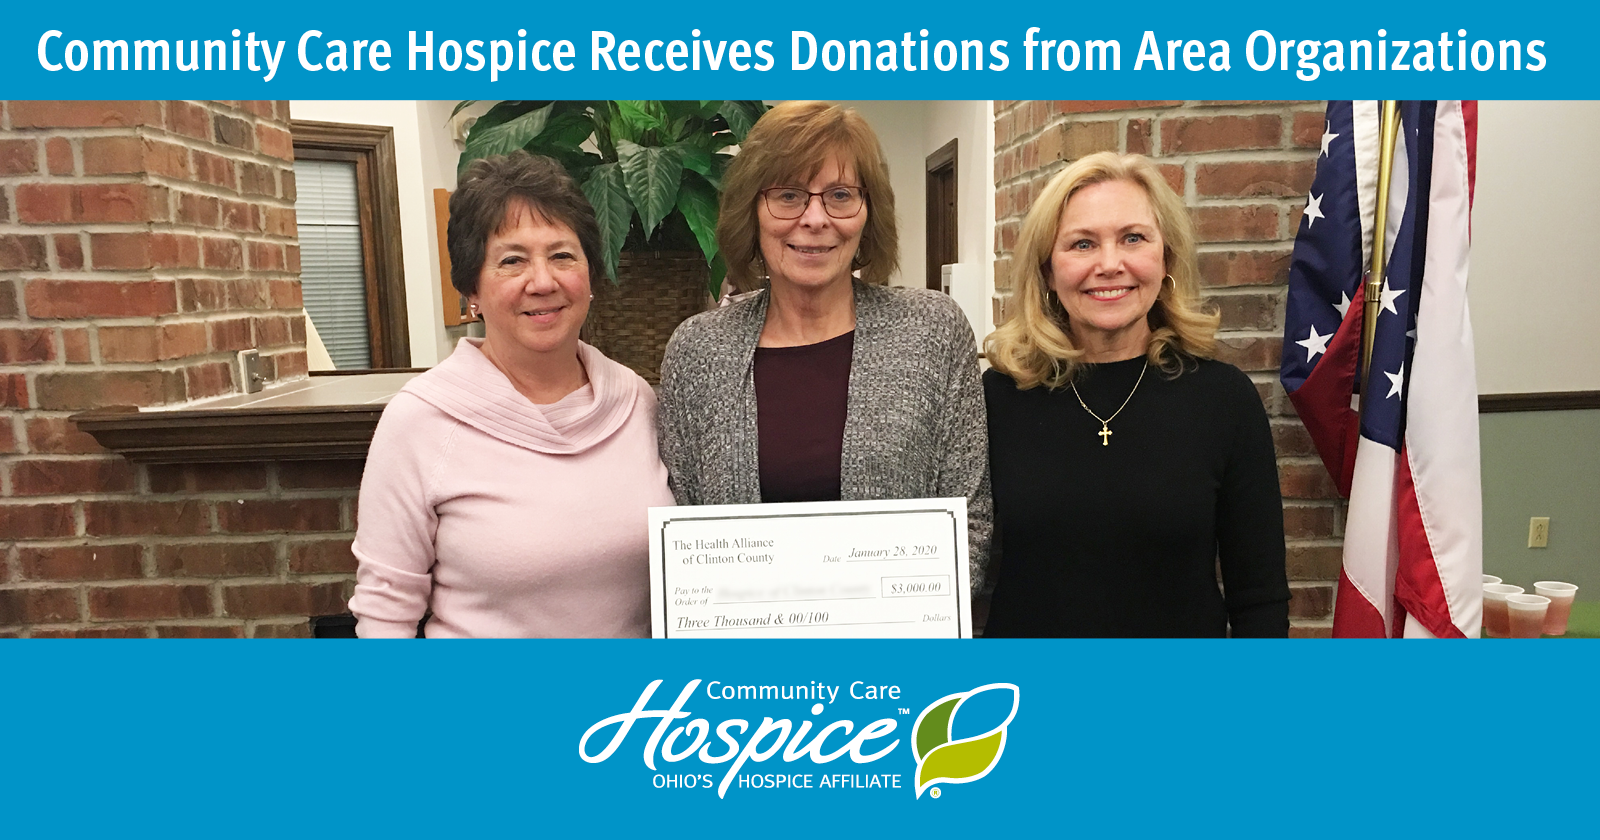 Community Care Hospice Receives Donations From Area Organizations